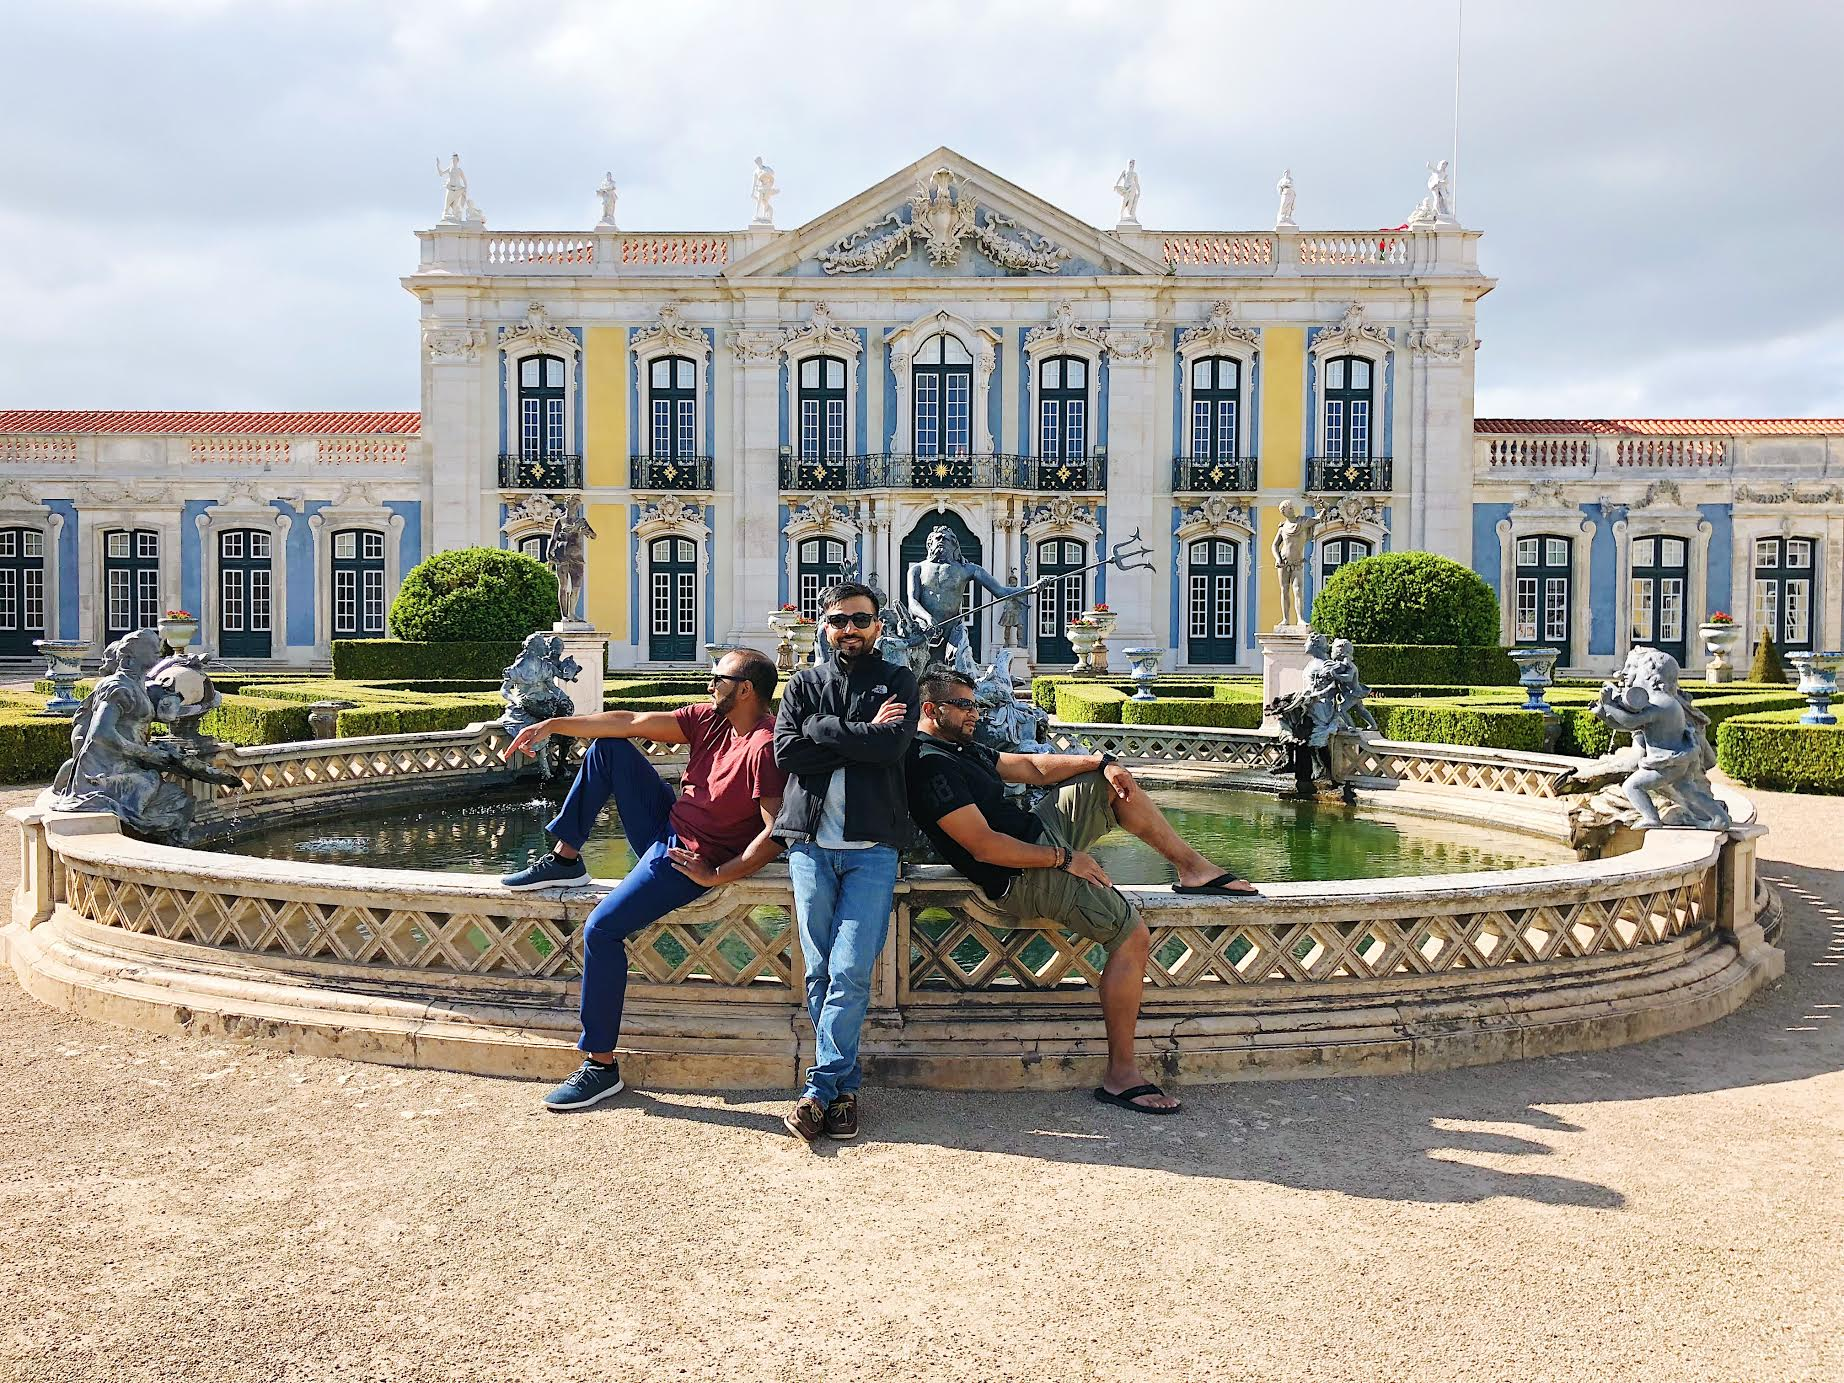 Muslim-travel-guide-Sintra-Portugal-Palace-of-Queluz-fountain-of-Neptune-boys